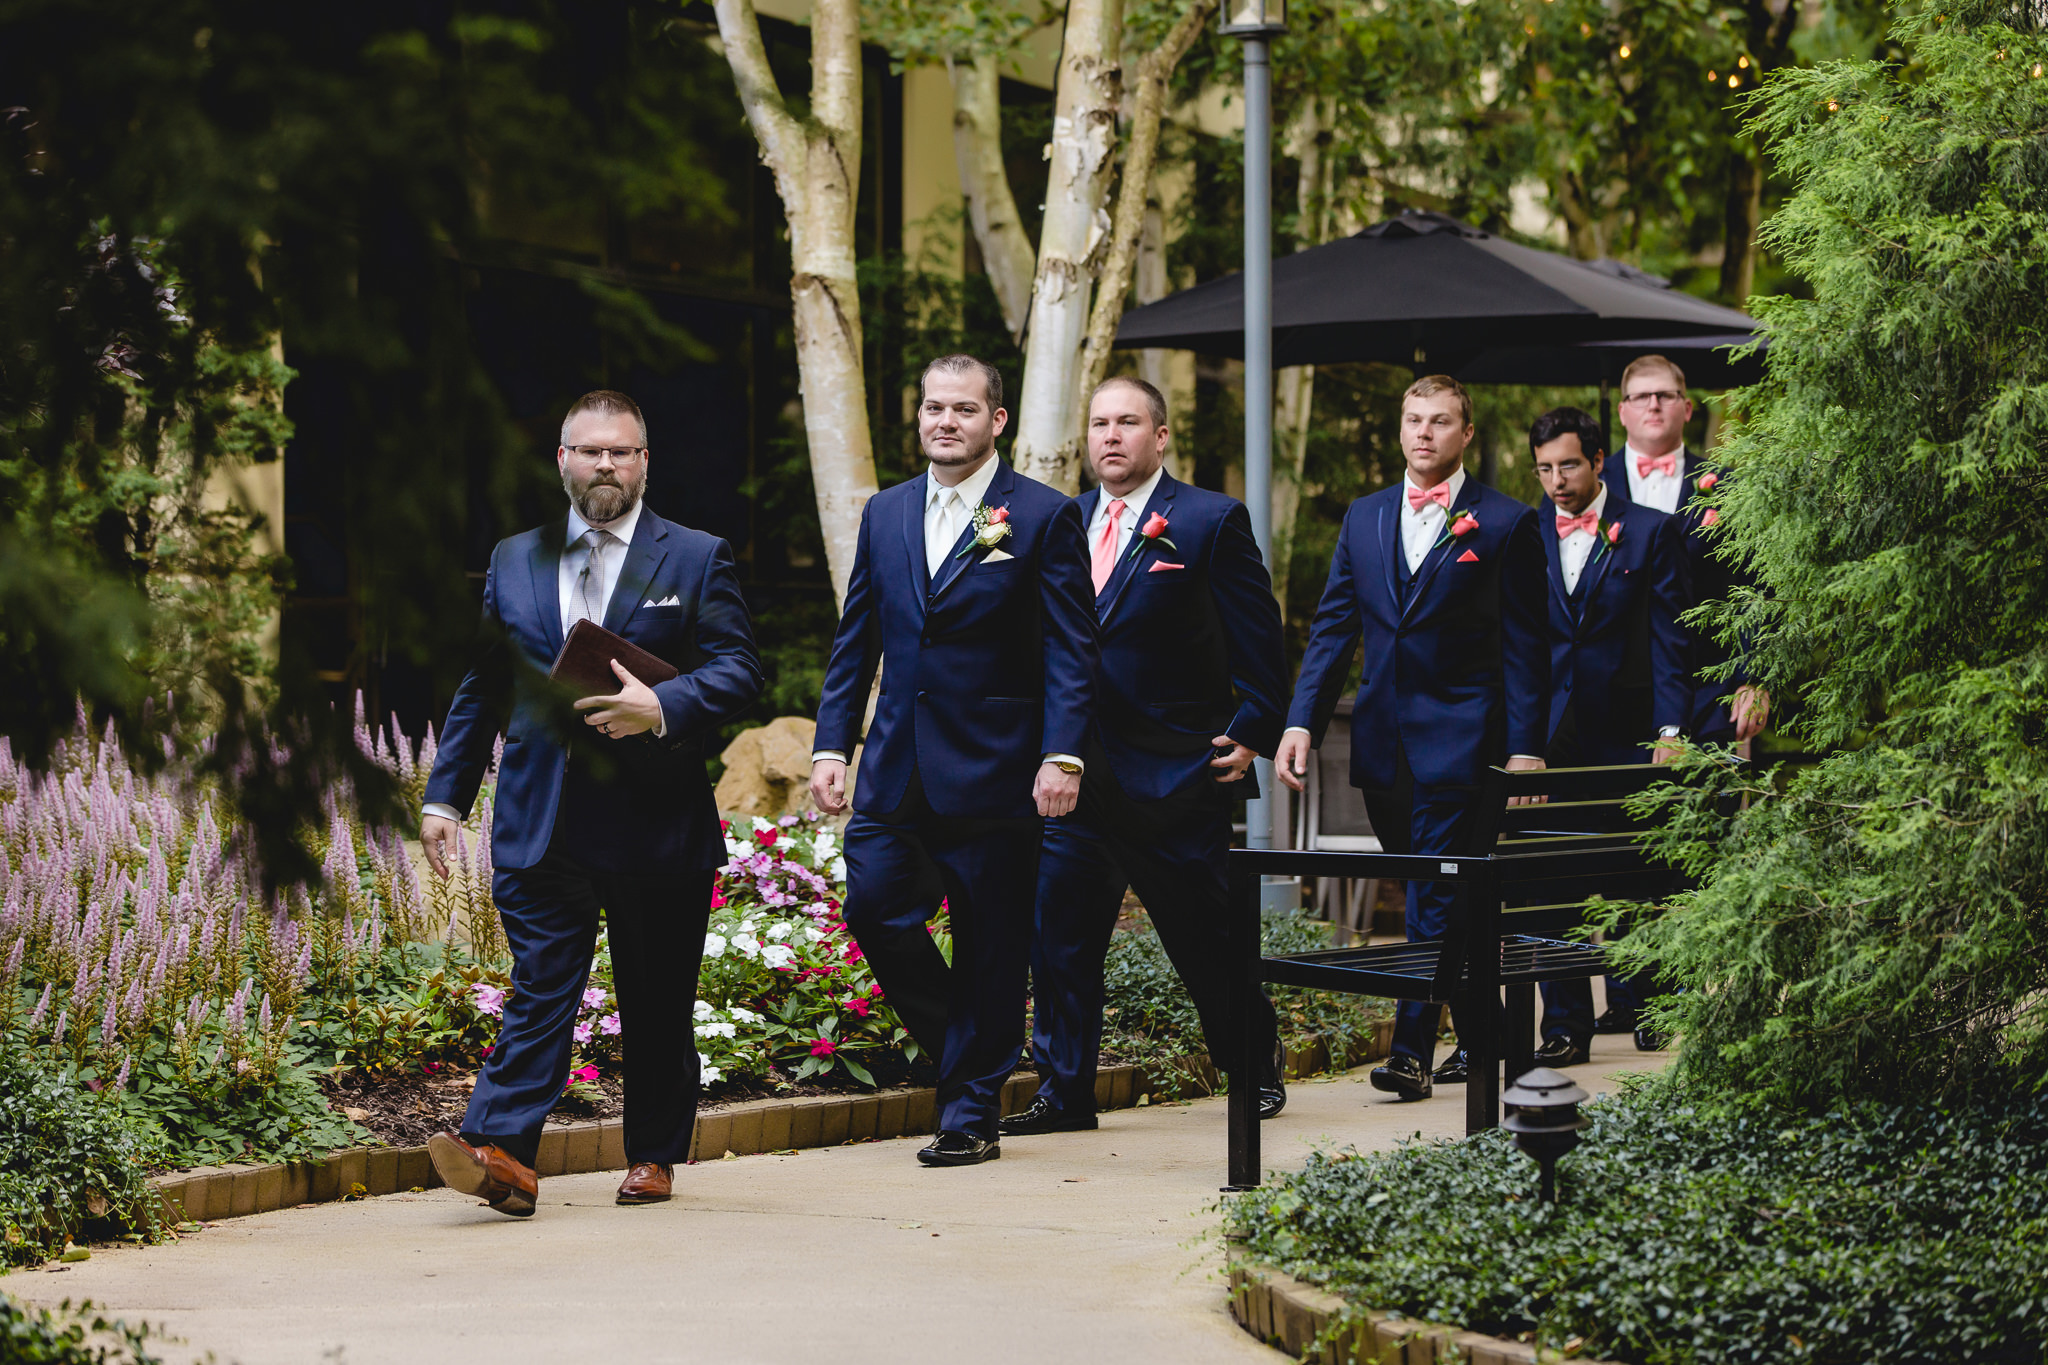 Officiant leads the way as the groom and groomsmen walk to the wedding ceremony